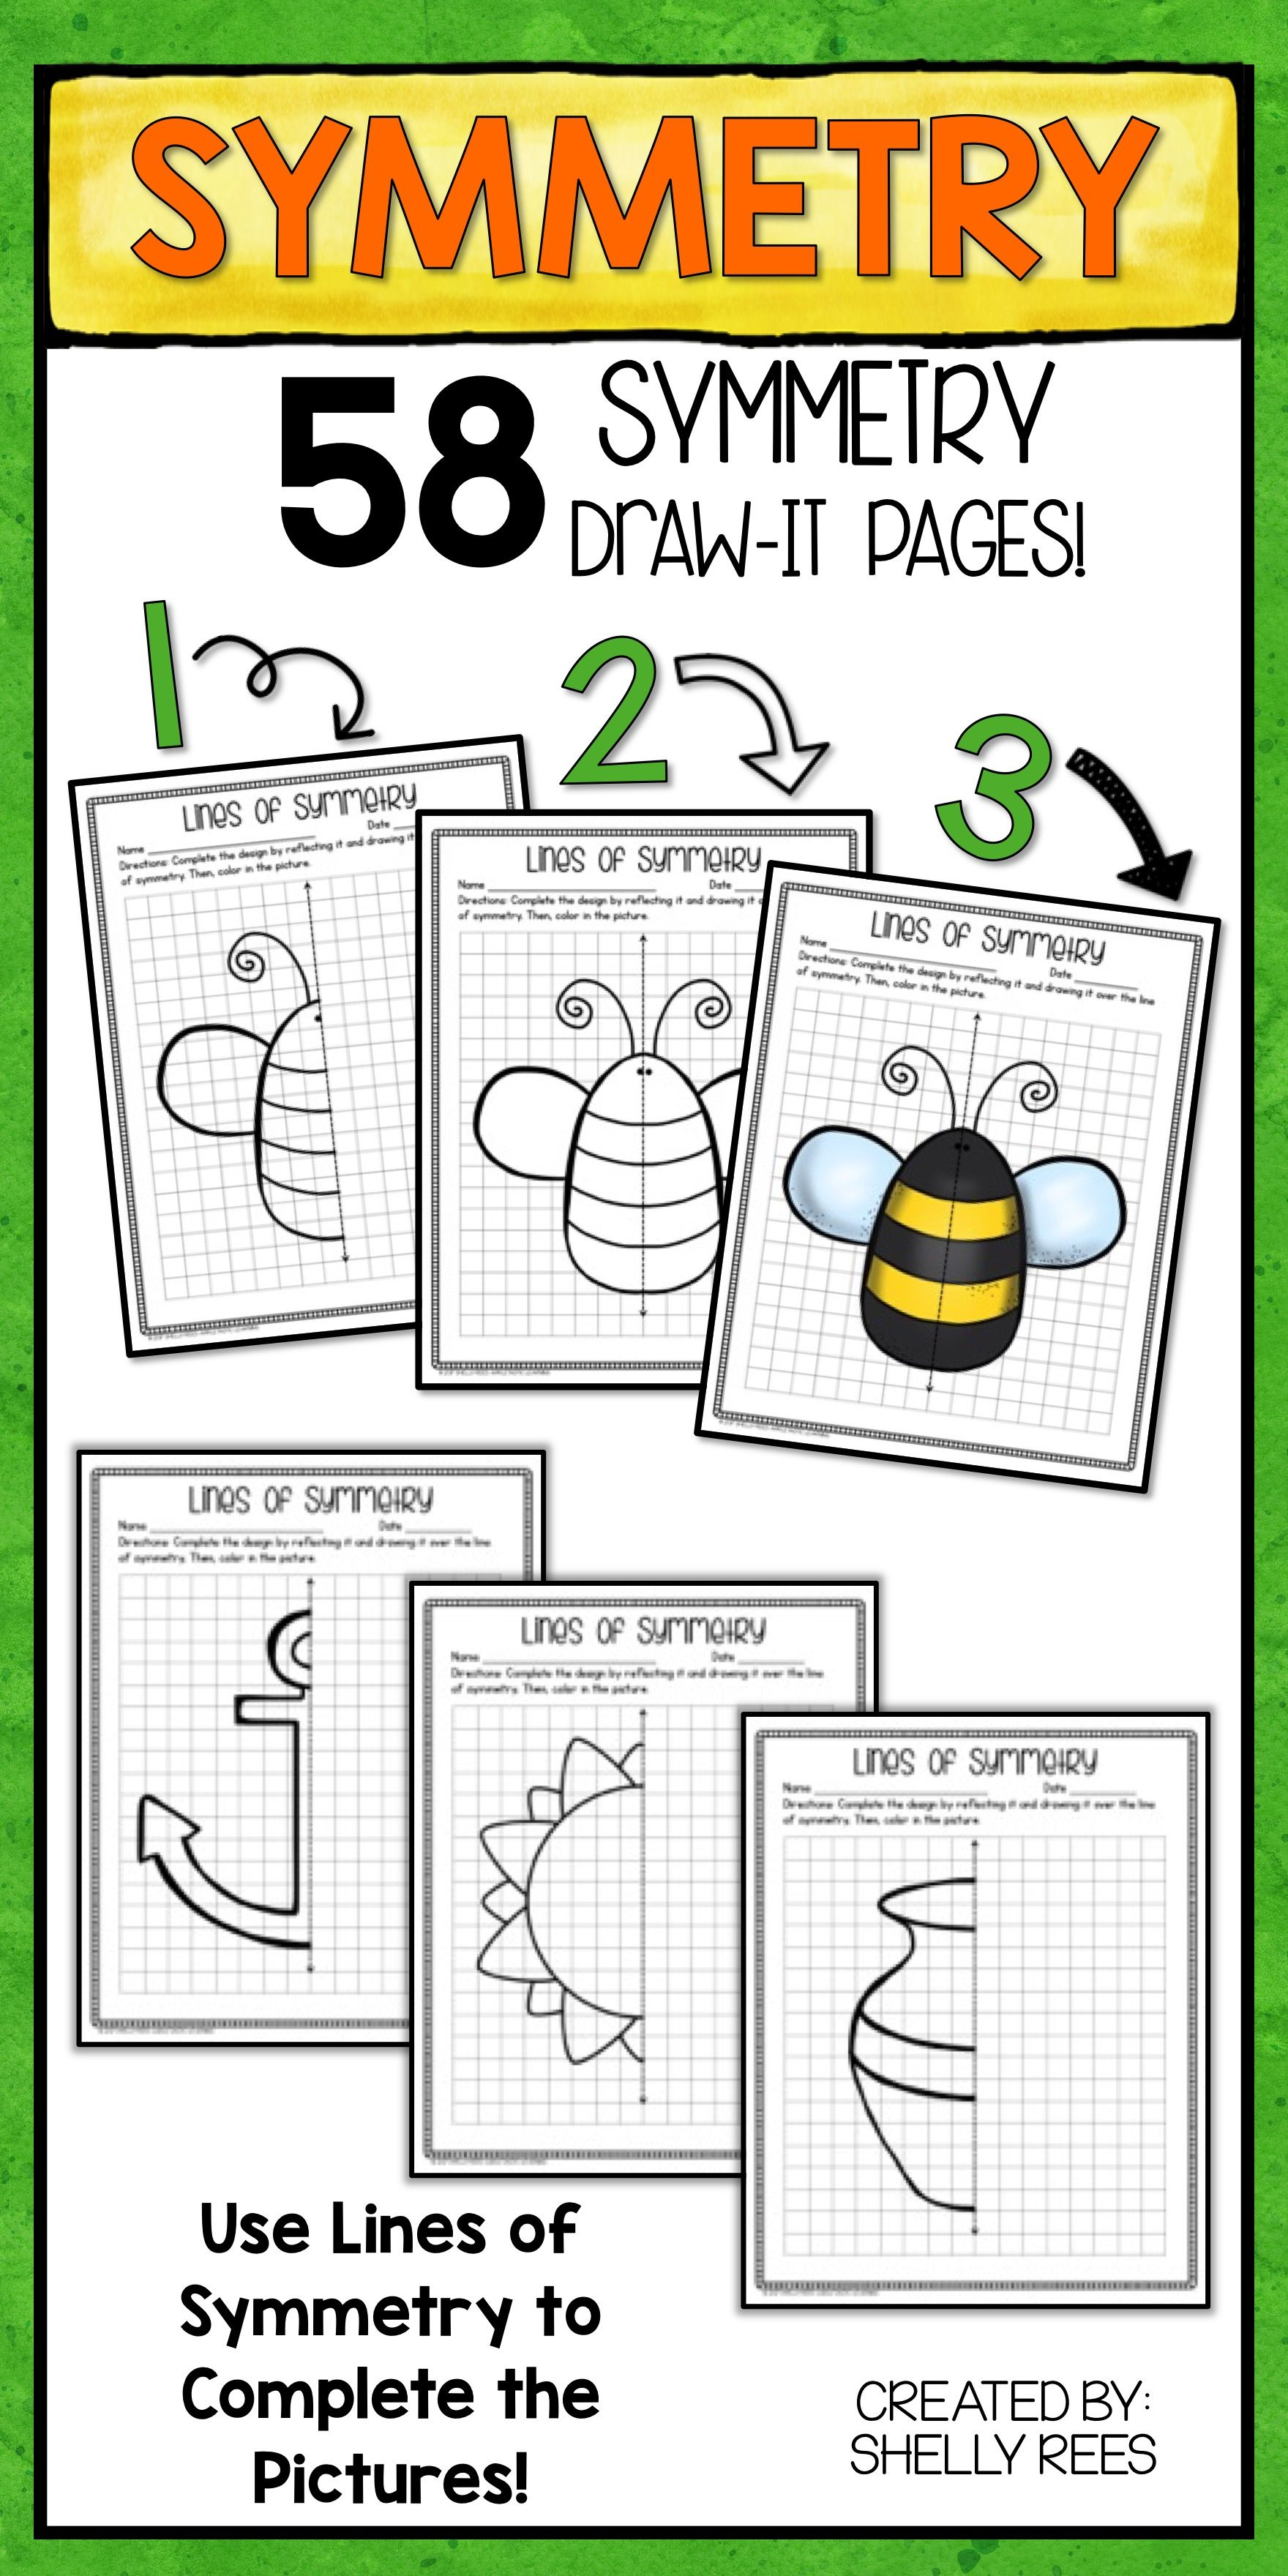 Lines of Symmetry Activities | Symmetry activities, Fun drawings and ...